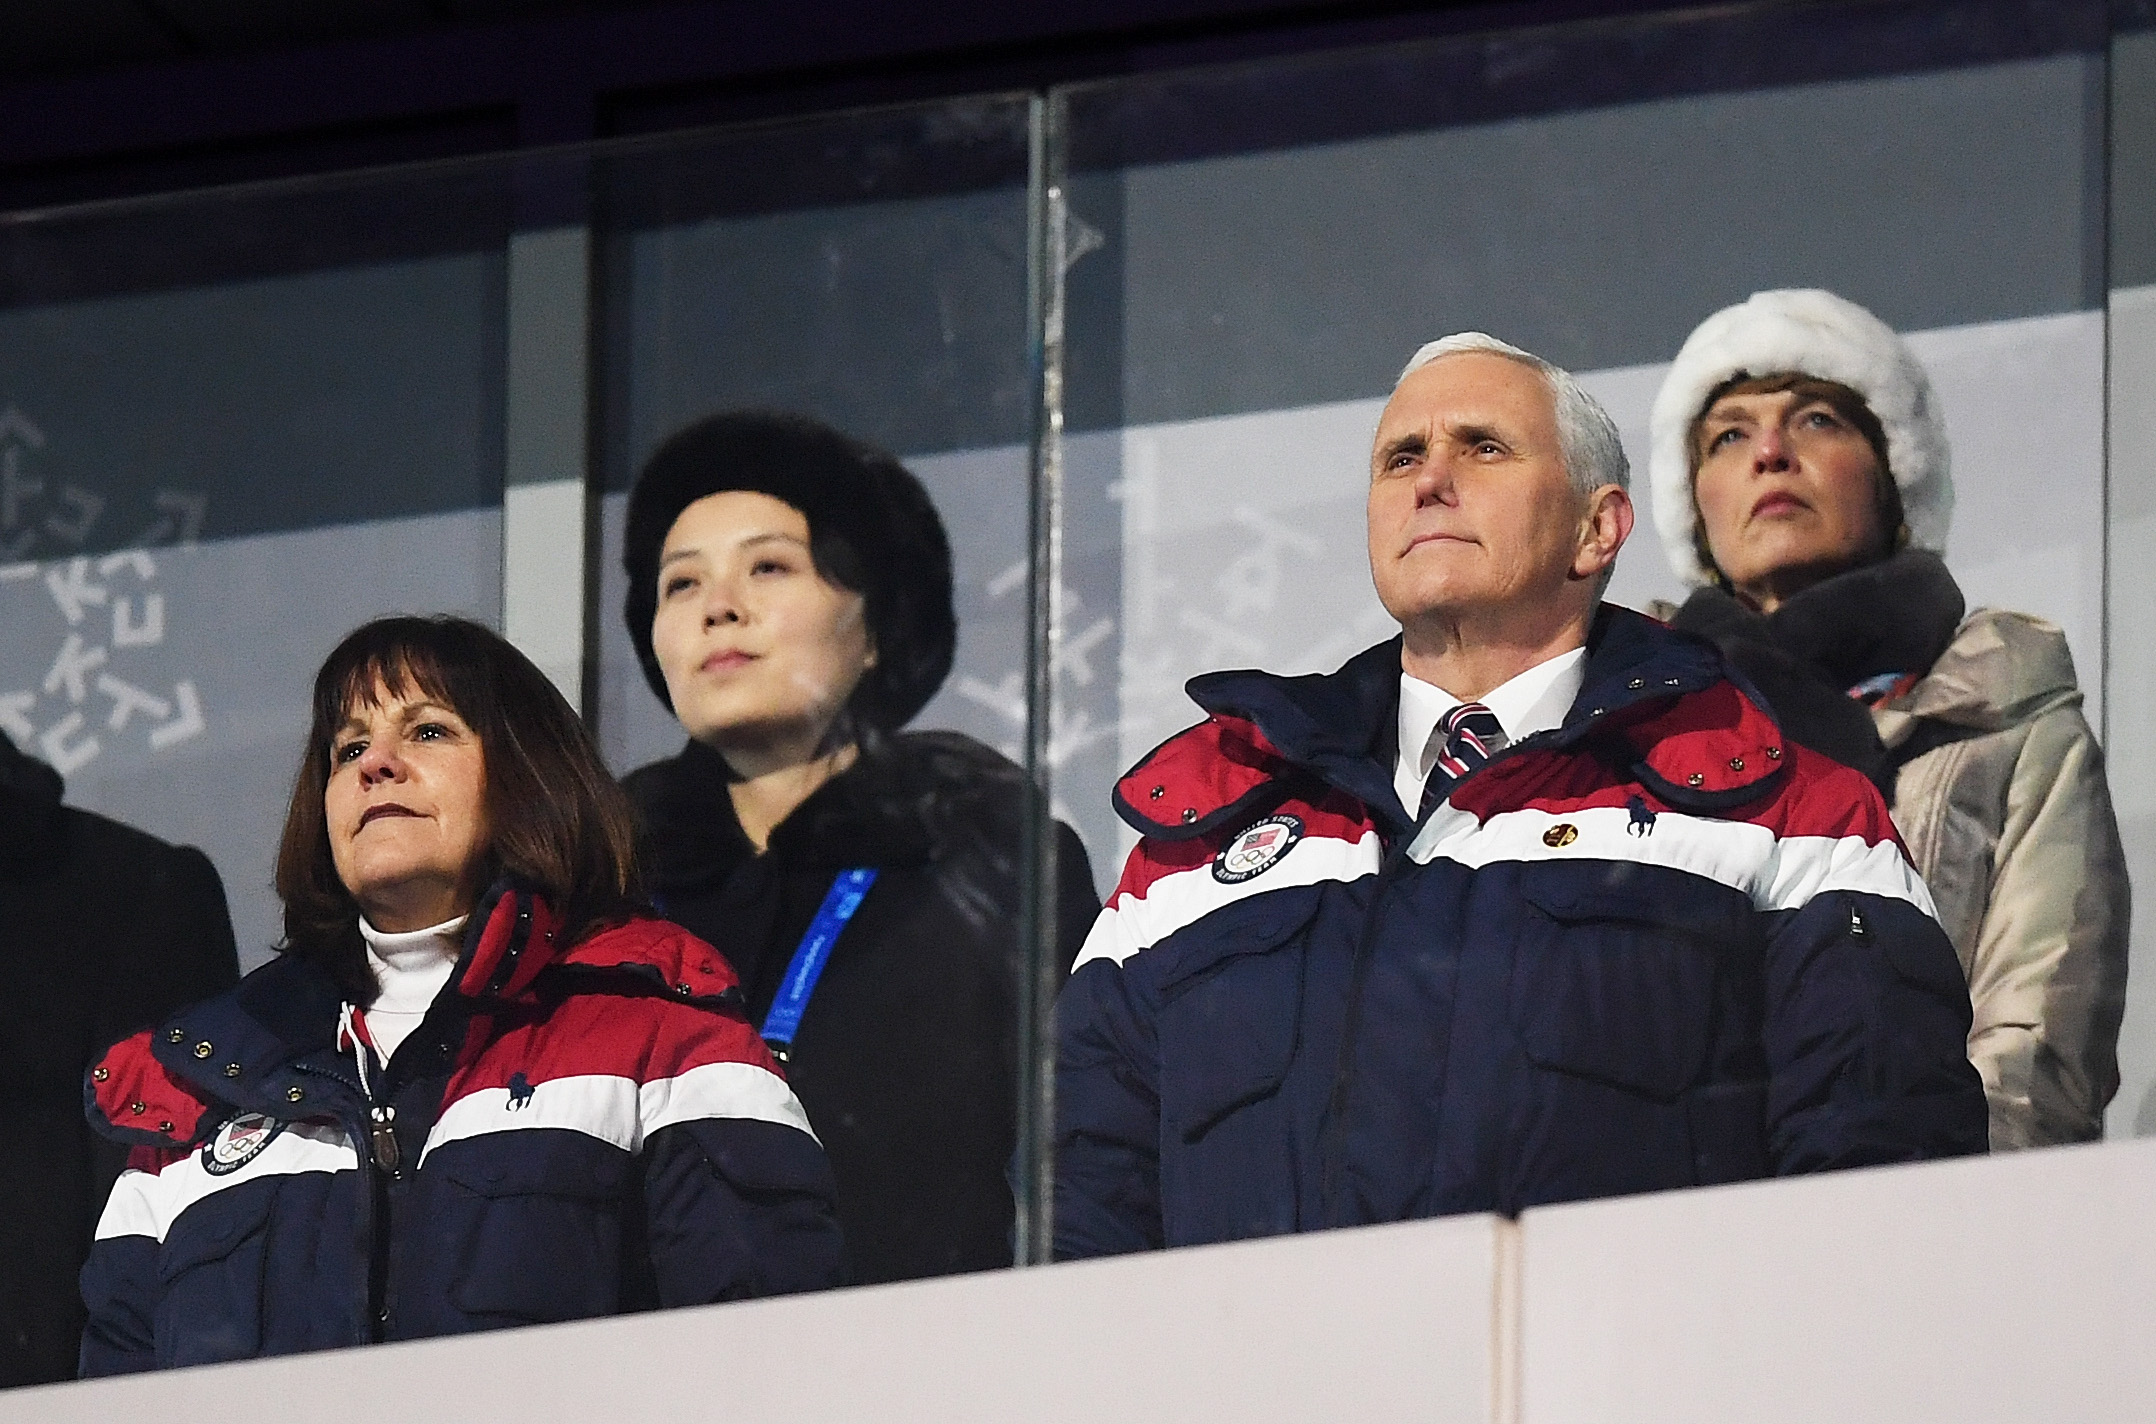 Vice President Mike Pence and North Korean Leader Kim Jong Un's sister Kim Yo-Jong, back left, watch during the Opening Ceremony of the Pyeongchang 2018 Winter Olympic Games on Feb. 9, 2018 in Pyeongchang-gun, South Korea. (Credit: Matthias Hangst/Getty Images)